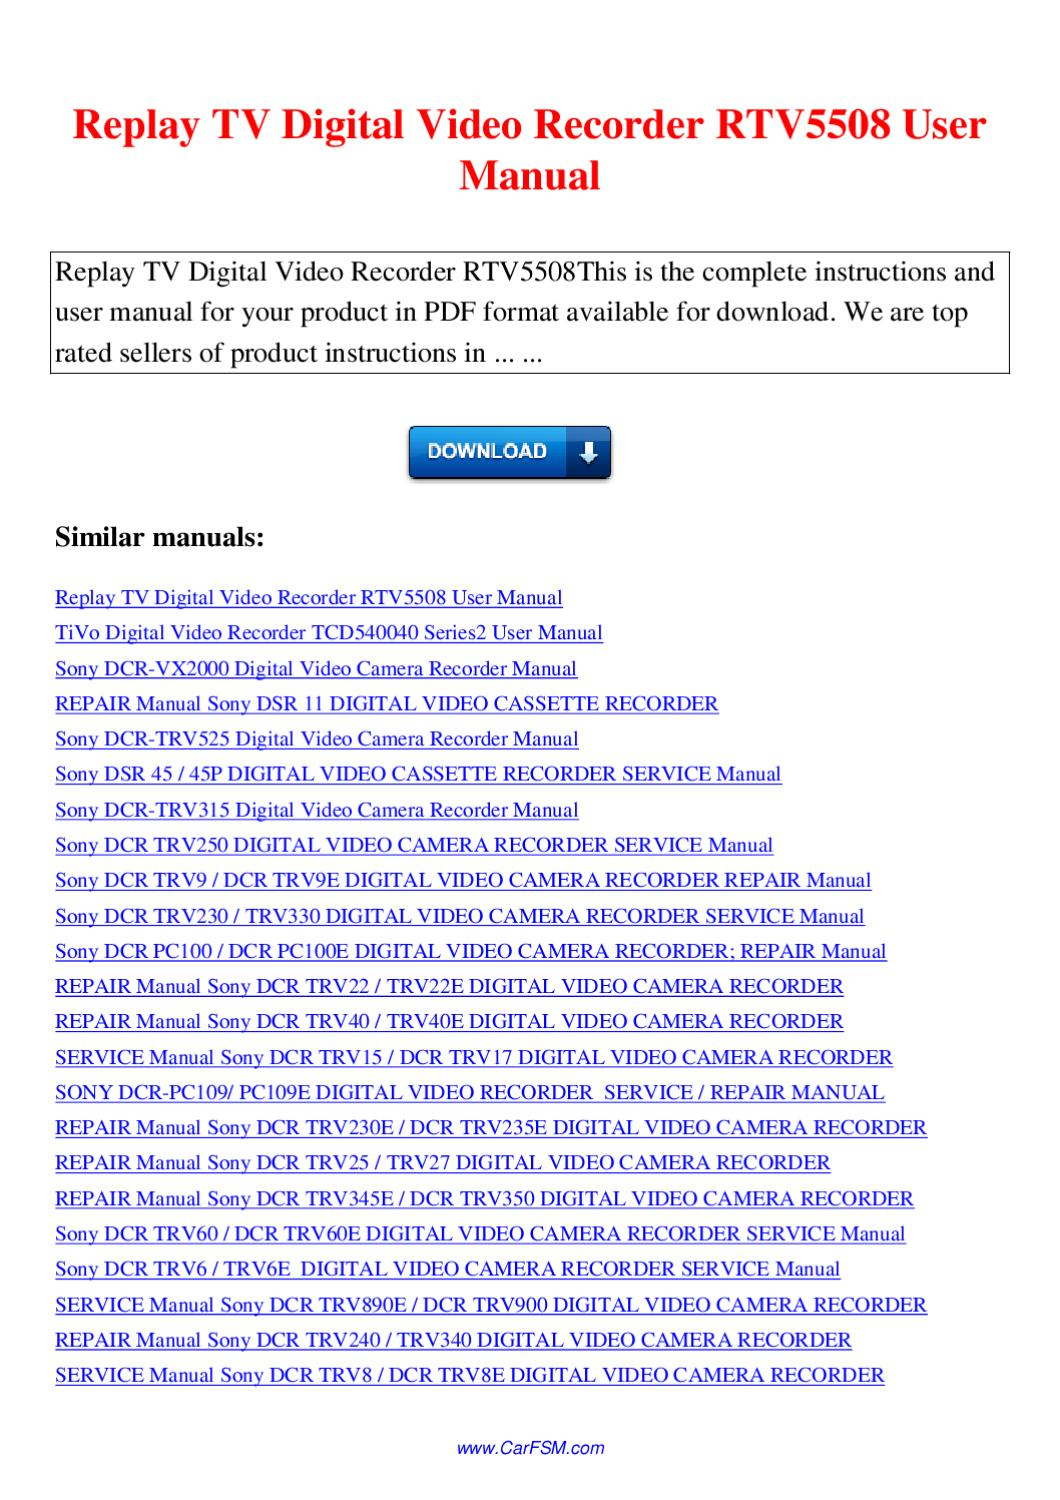 Service manual sony dcr trv890e / dcr trv900 digital video camera r.